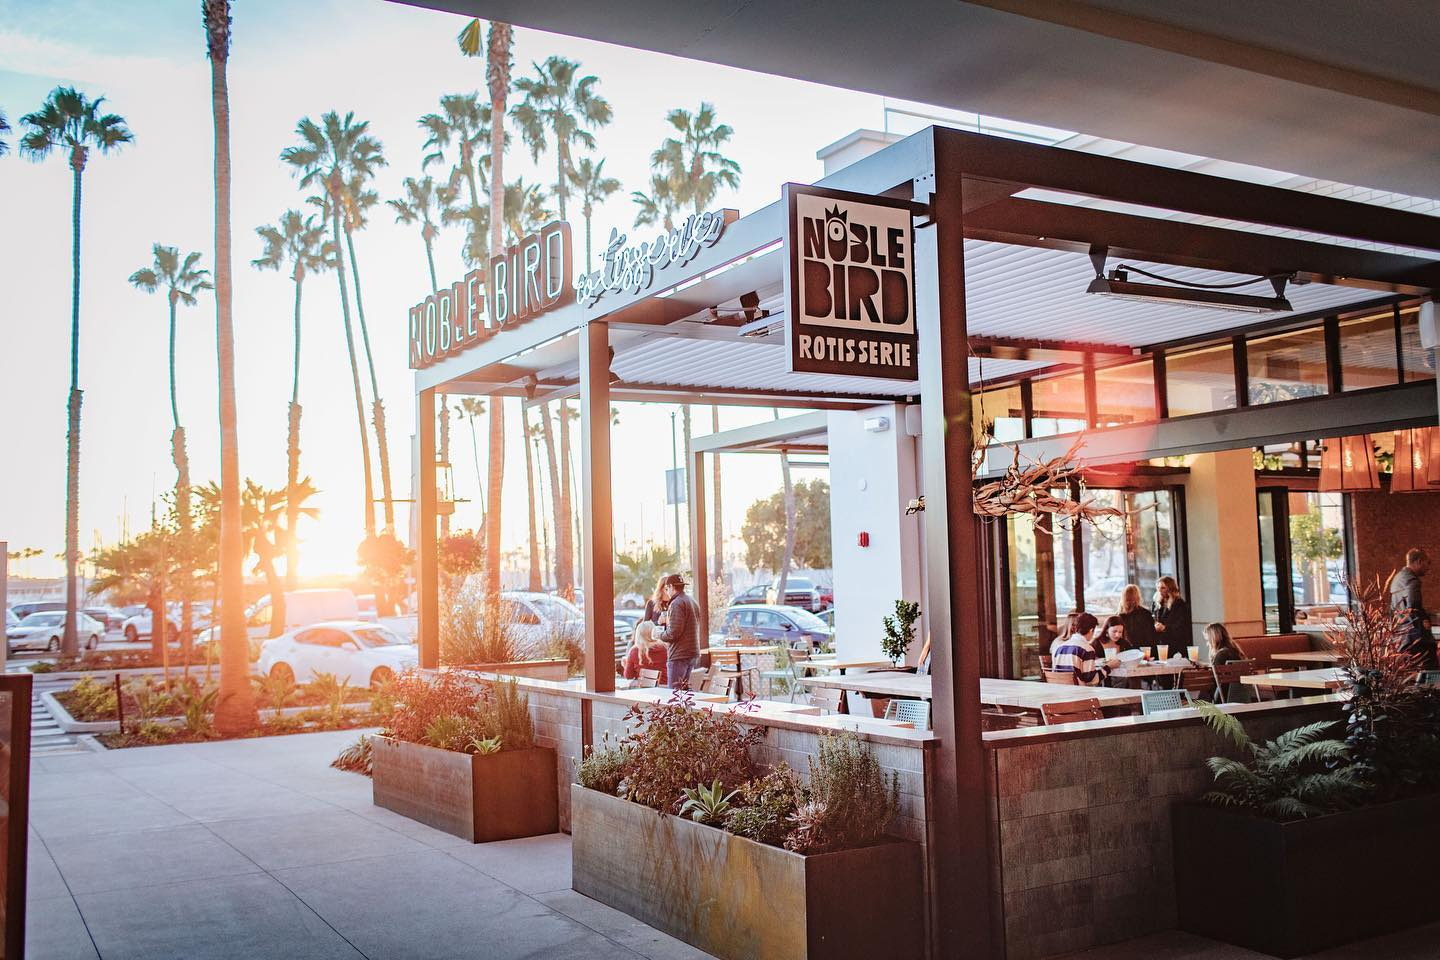 The Best Chicken Dinners On The Planet Can Be Found In Southern California At Noble Bird